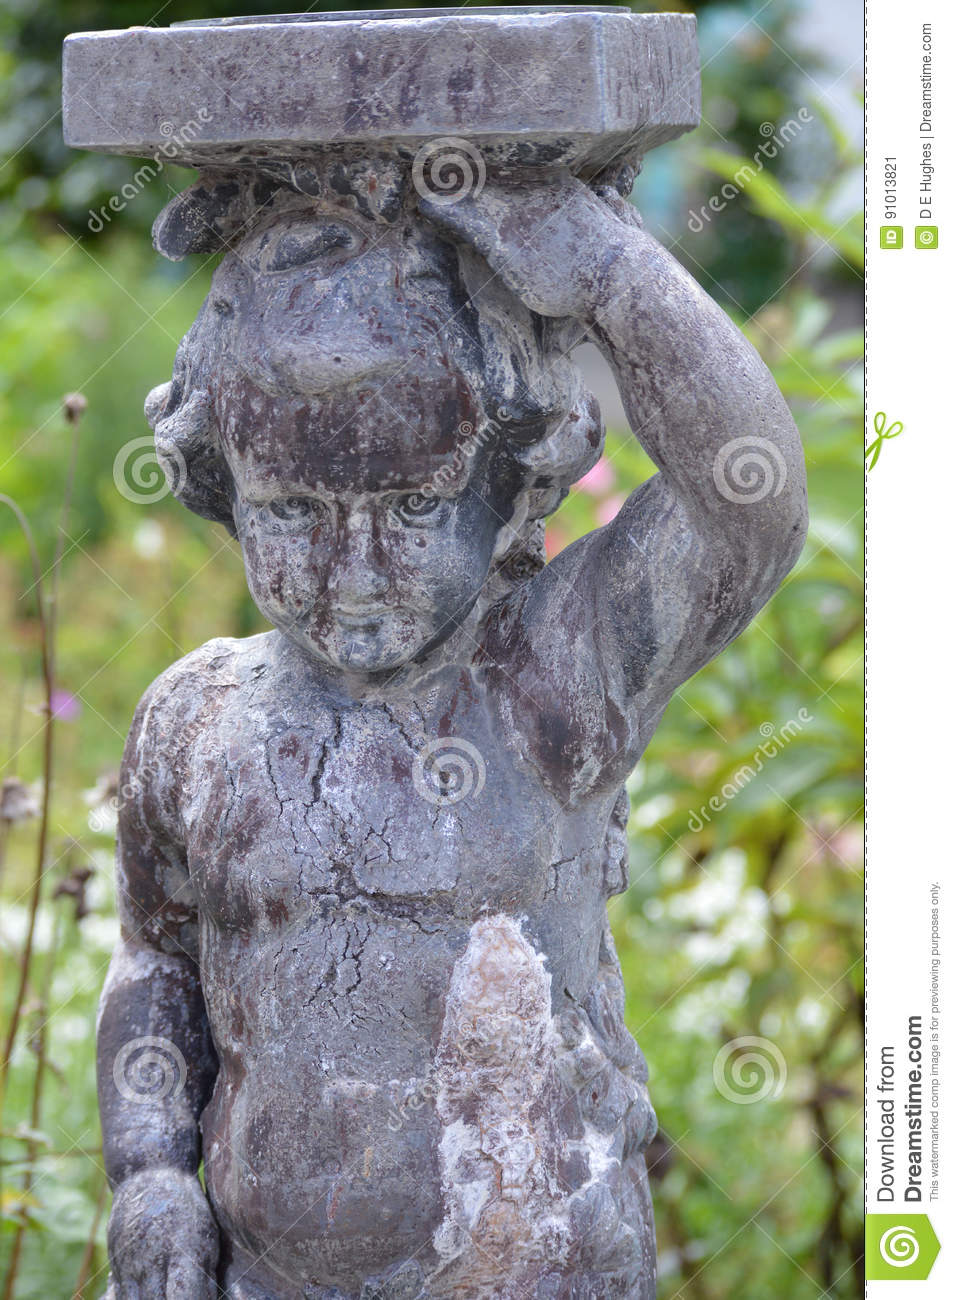 Stone statue of a child - Portmerion Village in Wales